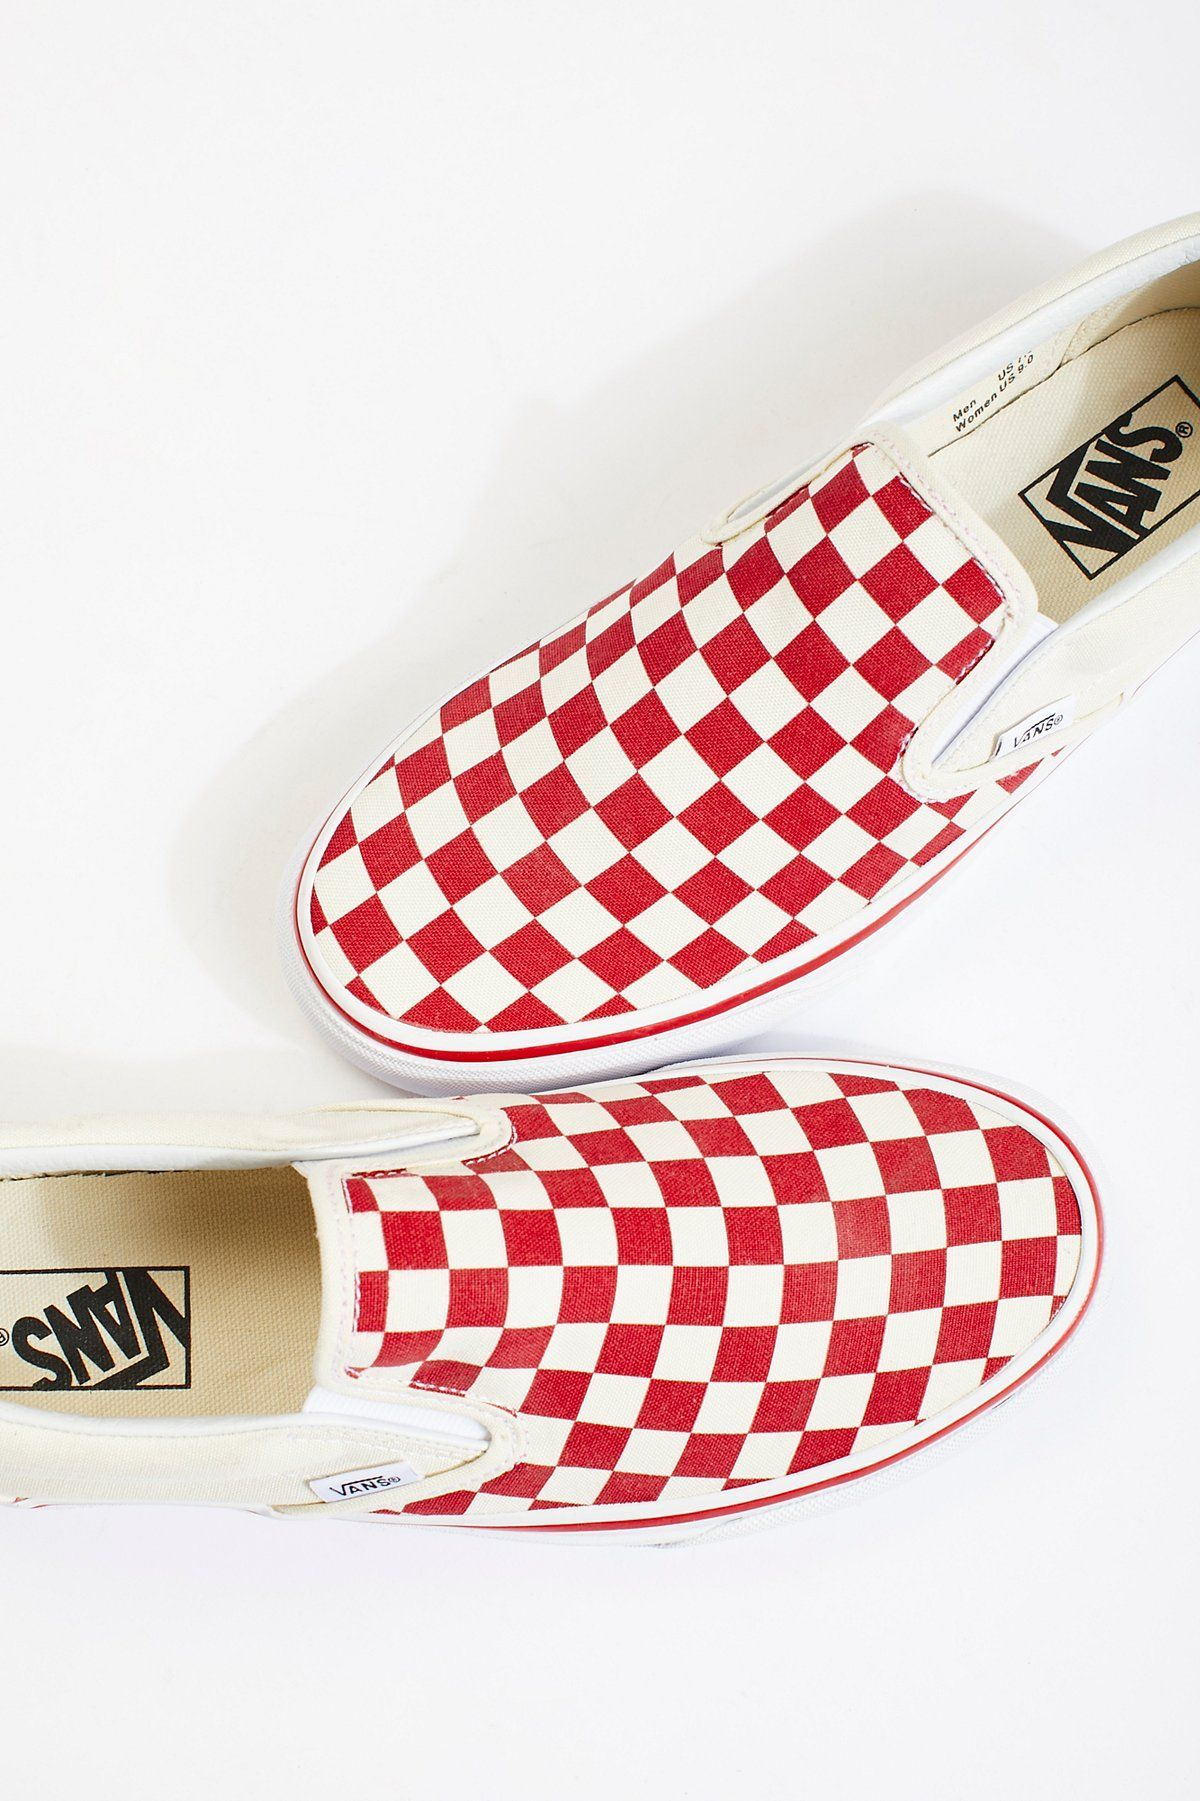 37cef1945a Vans Racing Red Classic Checkered Slip On at Free People Clothing Boutique   promheelsred